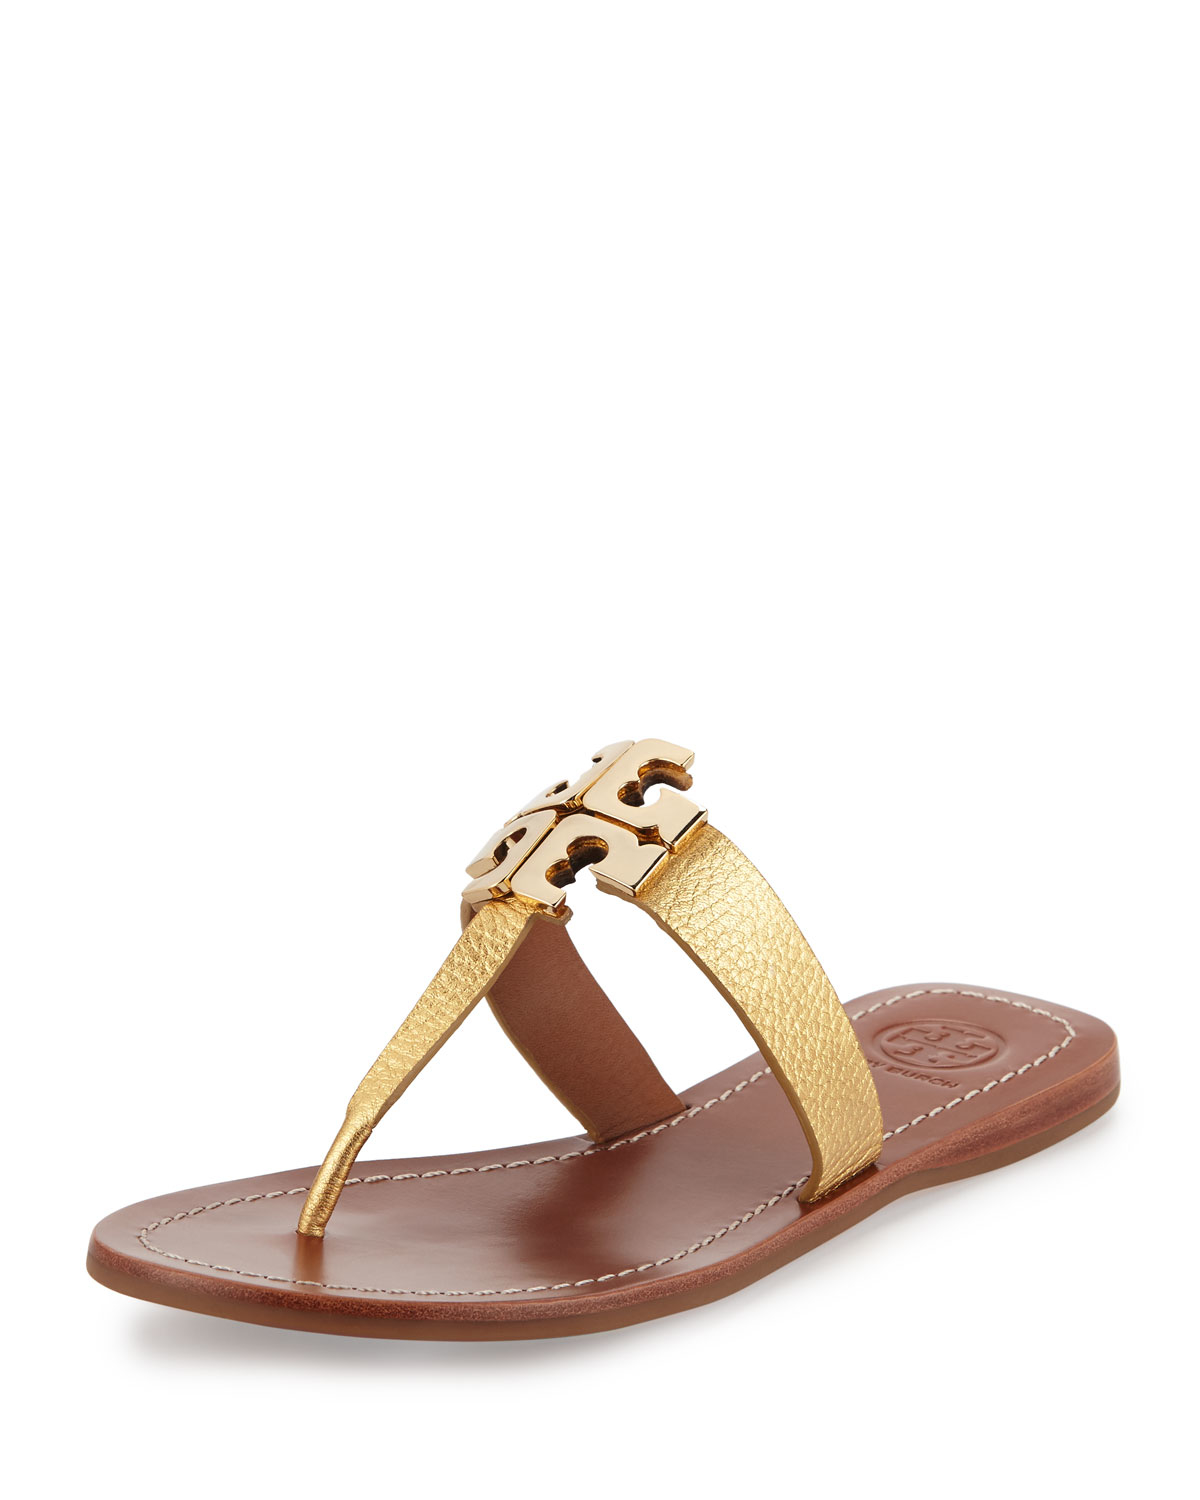 9ec524fe31e79a Lyst - Tory Burch Moore 2 Flat Leather Thong Sandal in Metallic